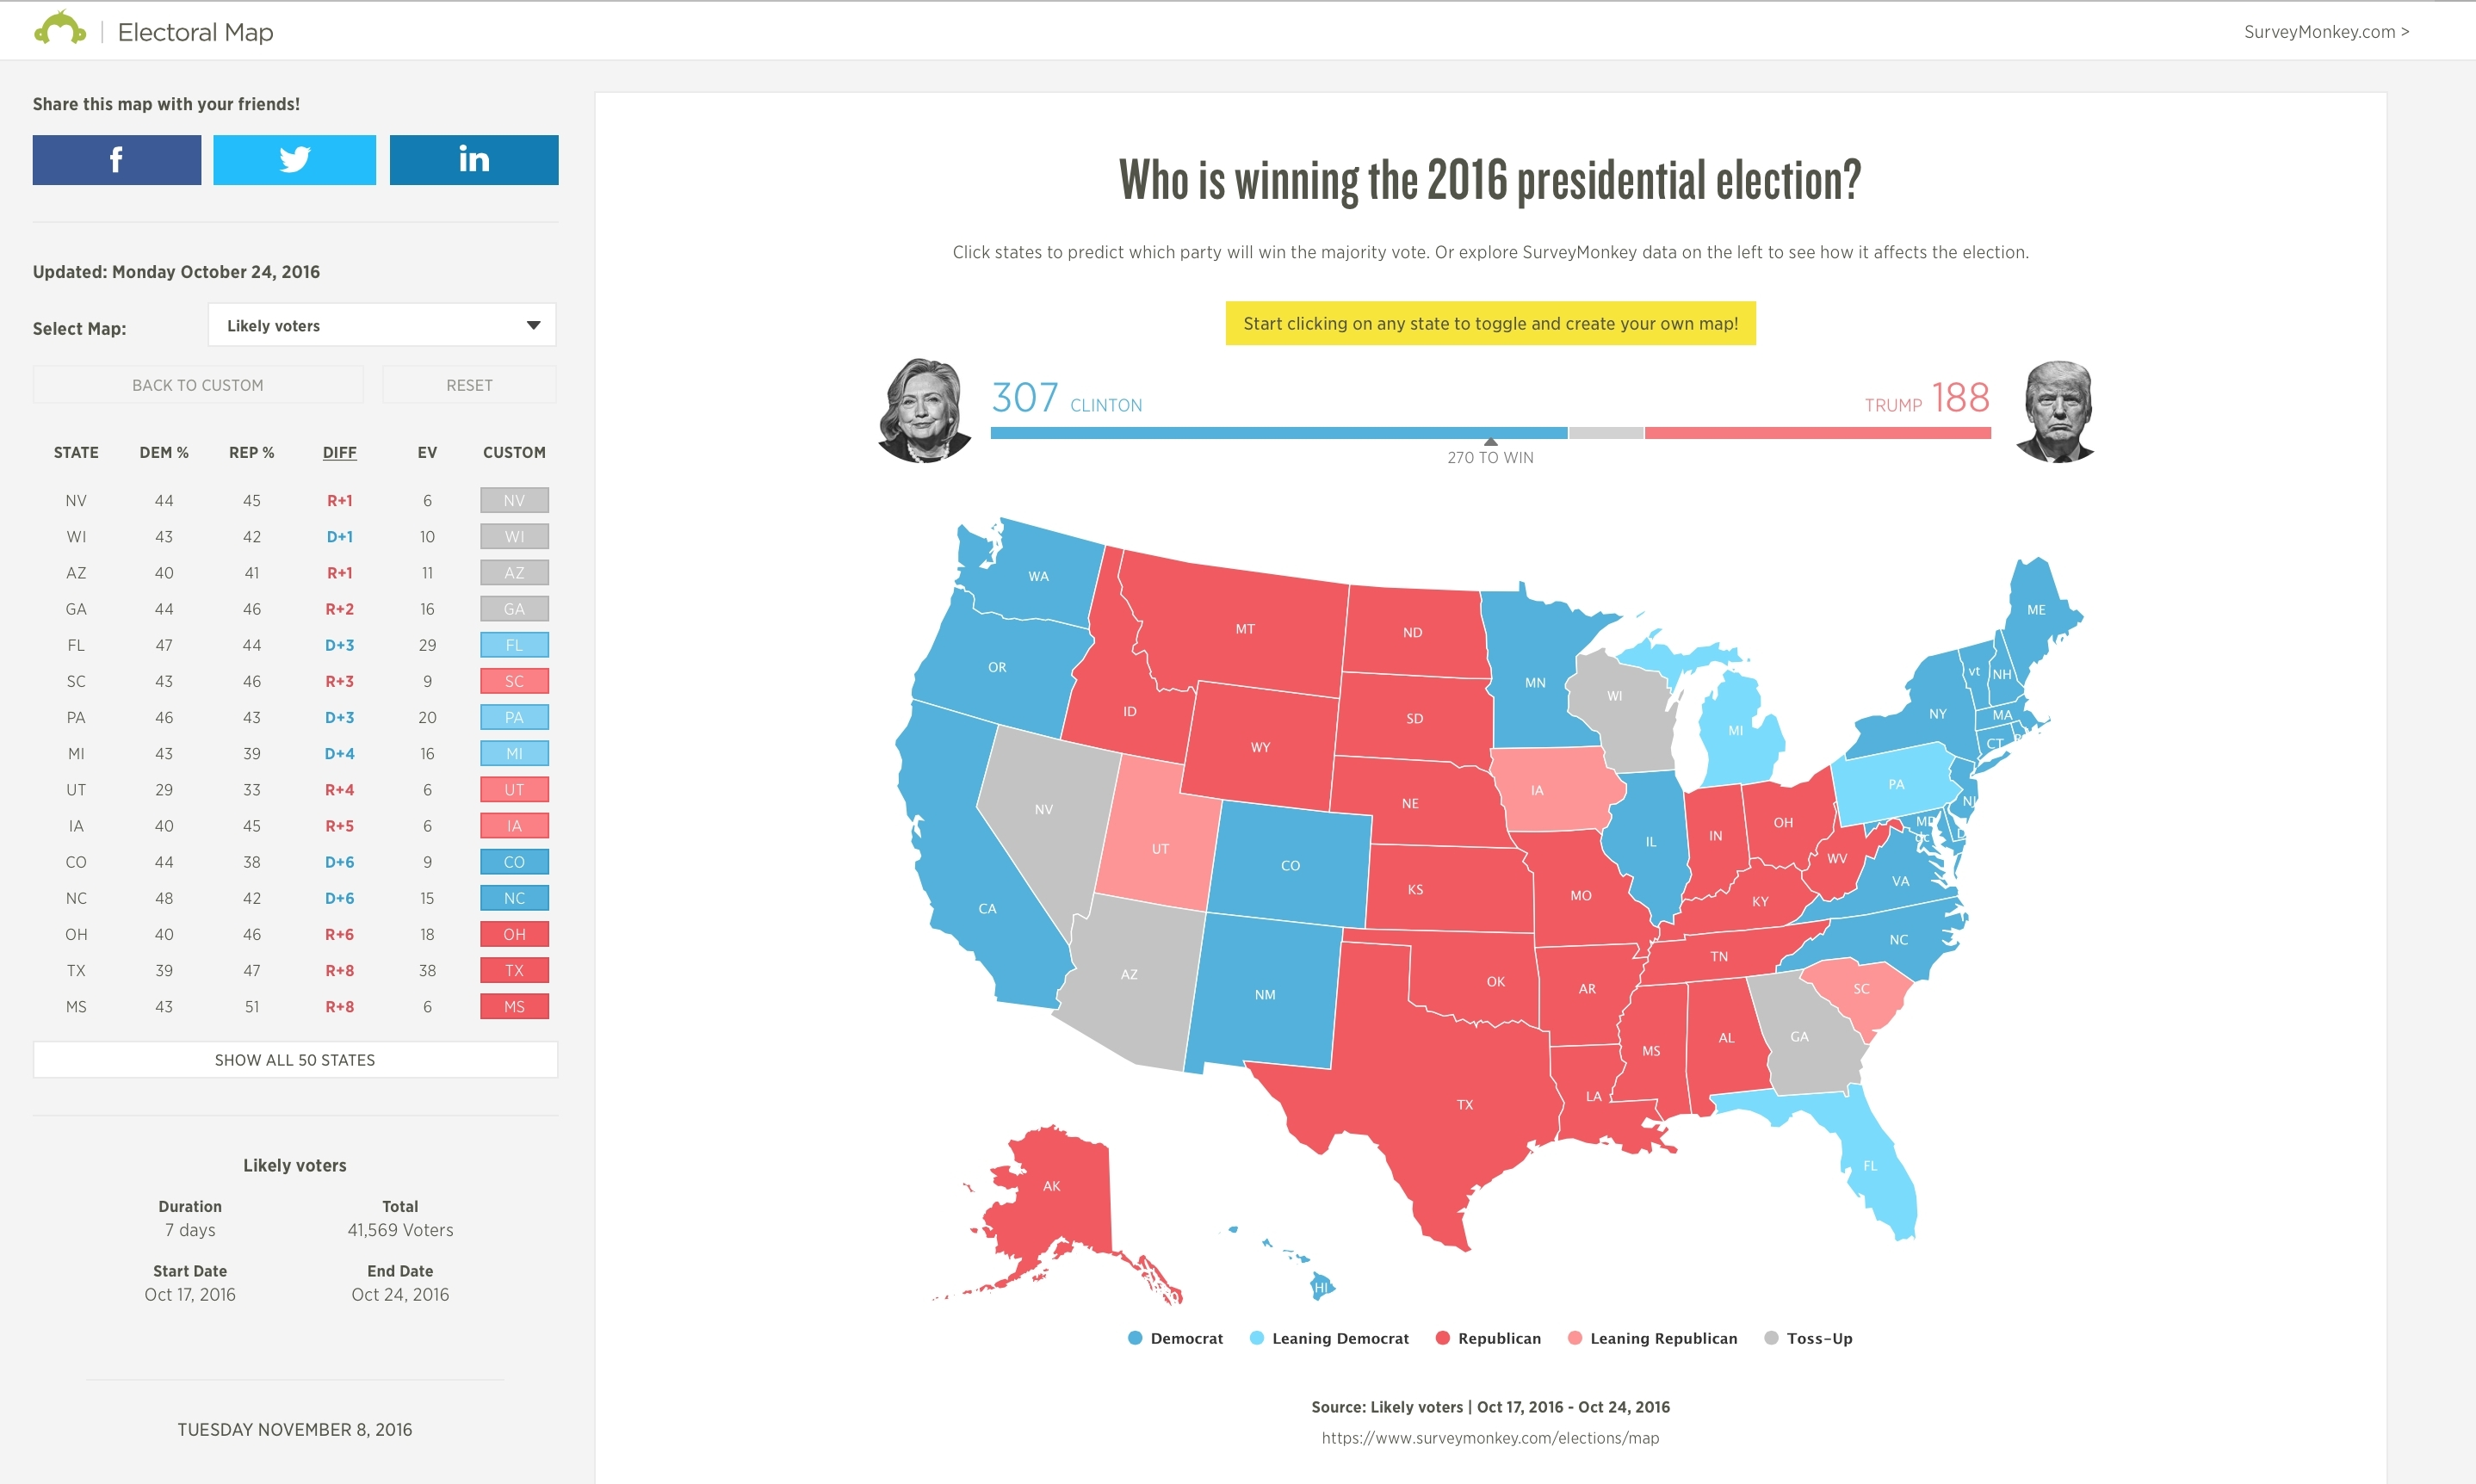 Surveymonkey Launches Real Time Polling Map To Showcase Latest Electoral College Forecast Business Wire